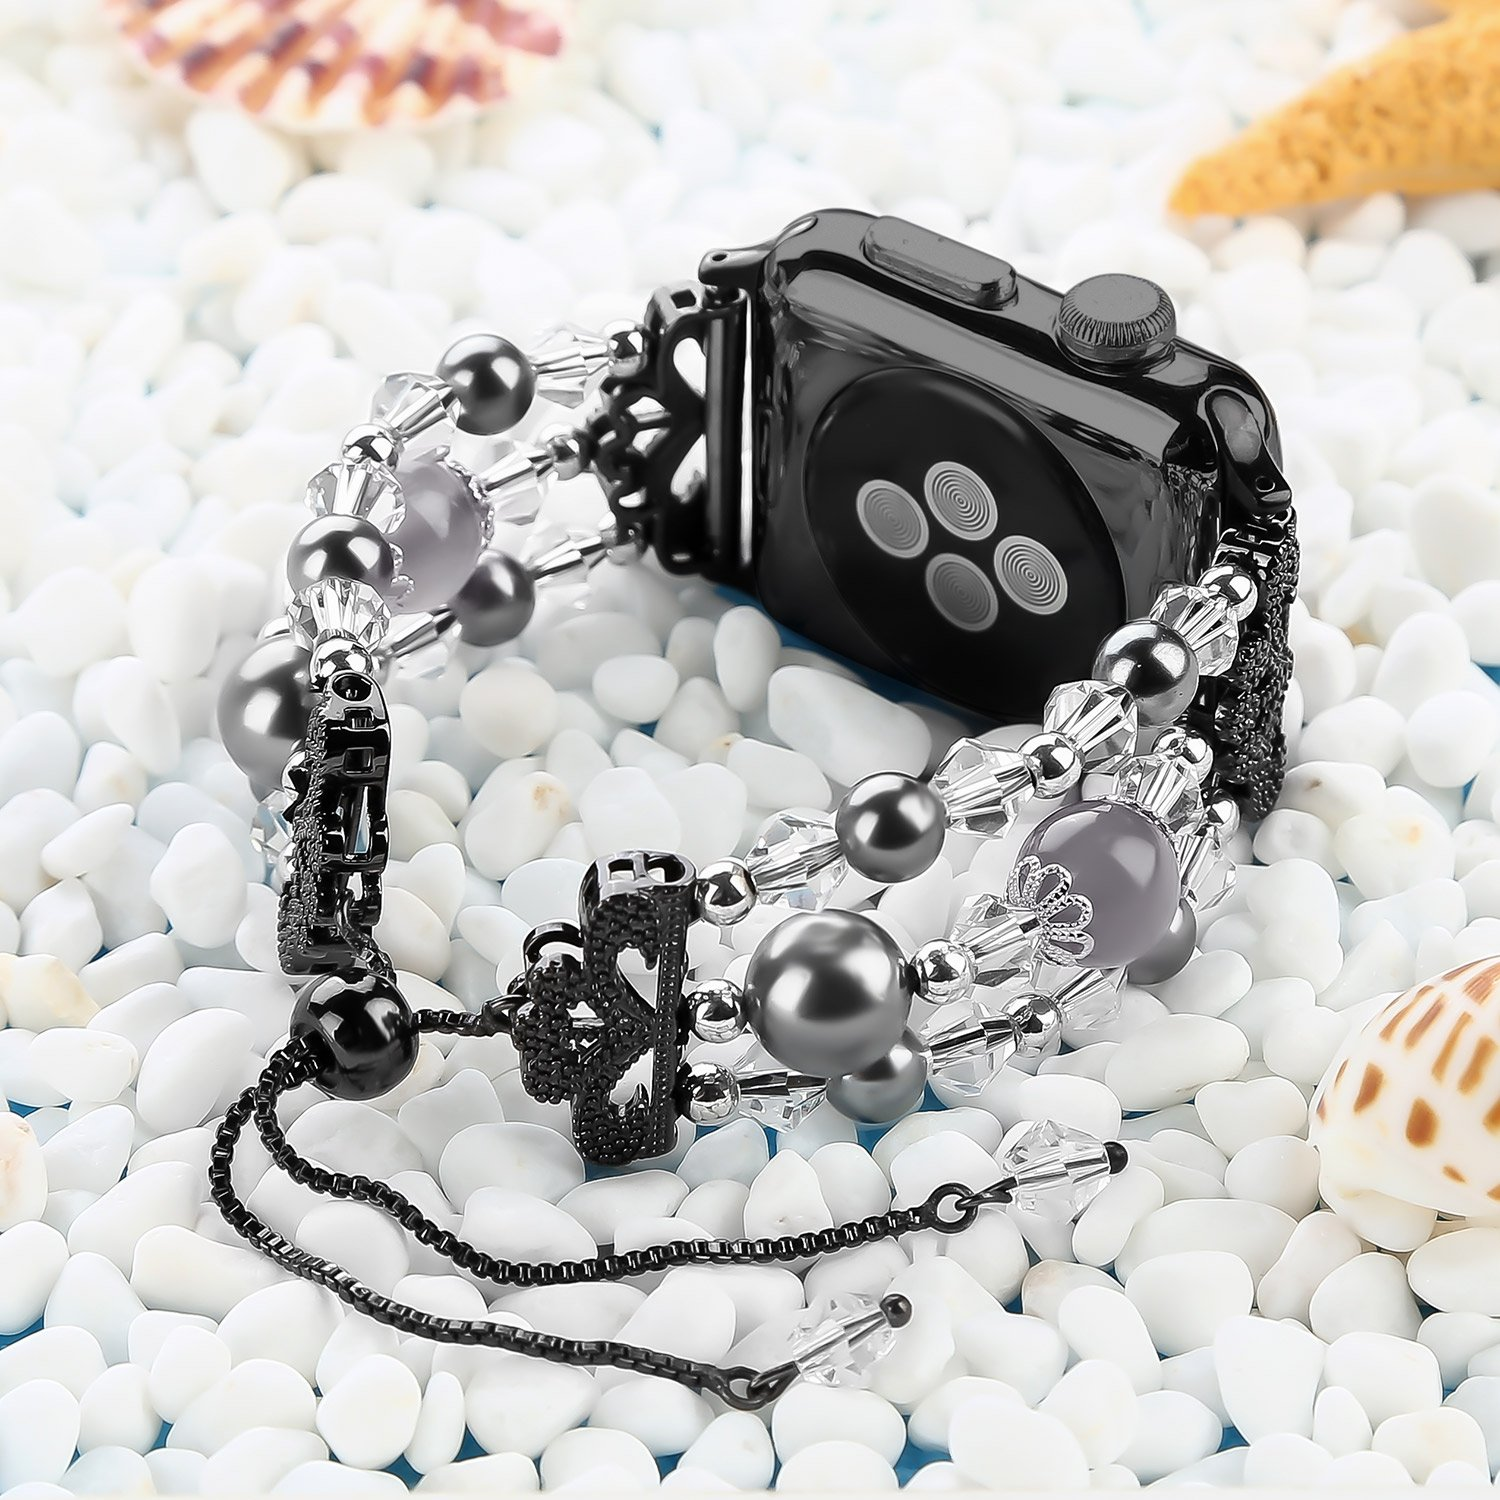 Junwei for Iwatch Bracelet Bands Adjustable, Women Stylish Apple Watchband with Stretch Bling Beads of Crystal Rhinestones Pearls for Apple Watch Series 4 3 2 1 Sport etc. - ( Black, 38mm / 40mm )